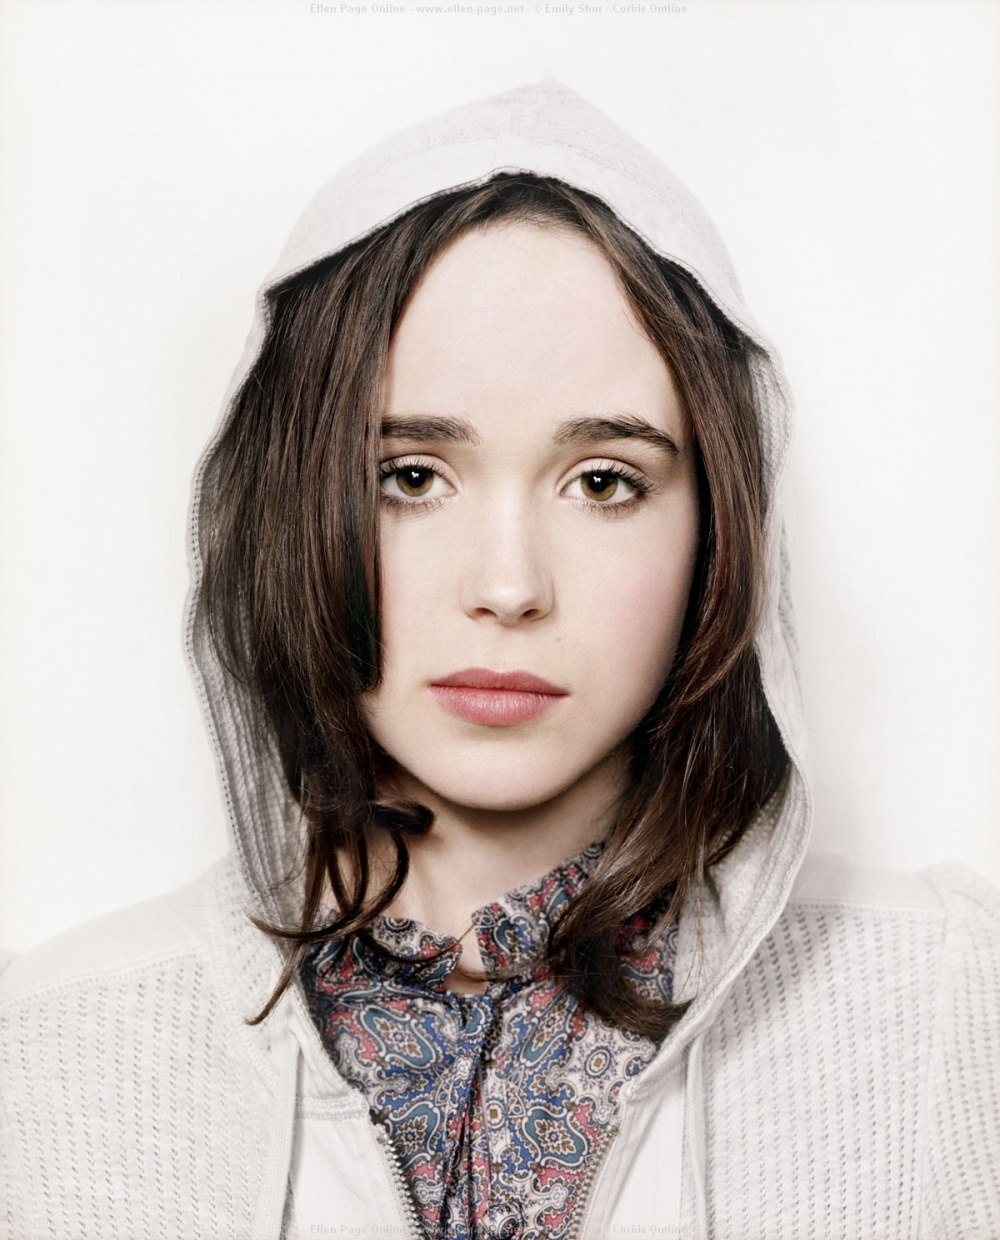 Nice Images Collection: Ellen Page Desktop Wallpapers